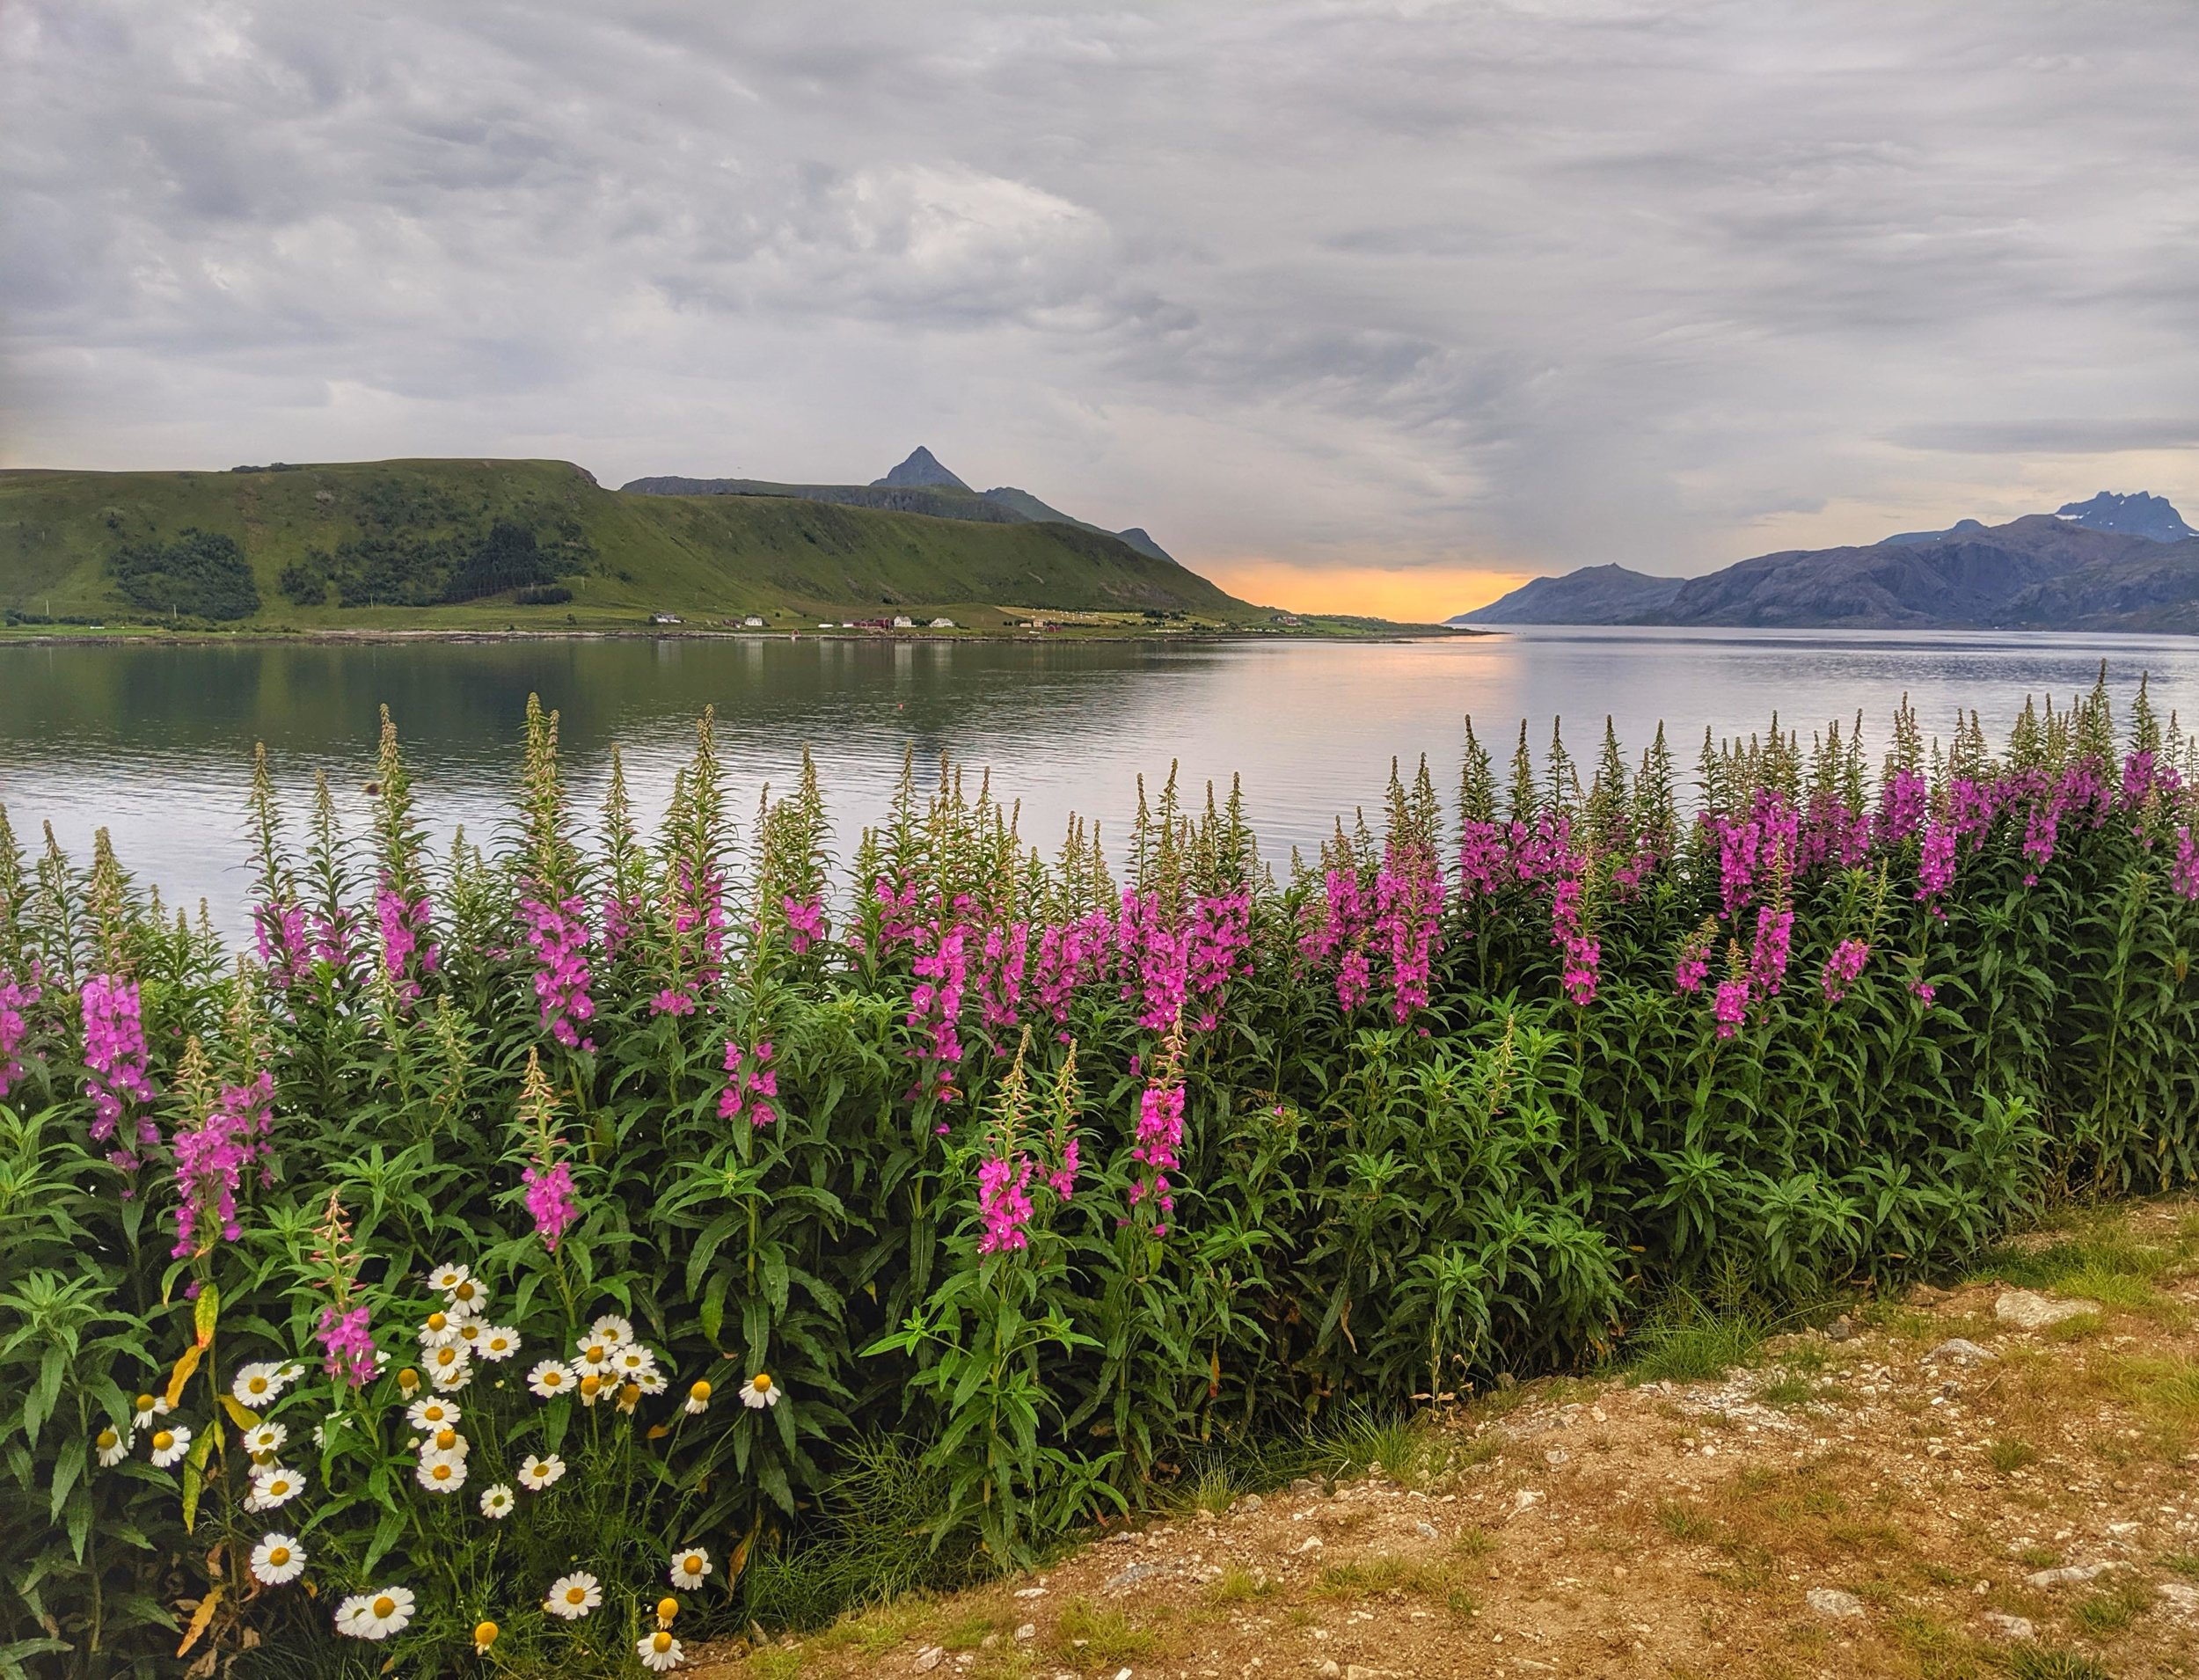 The end of another Lofoten day